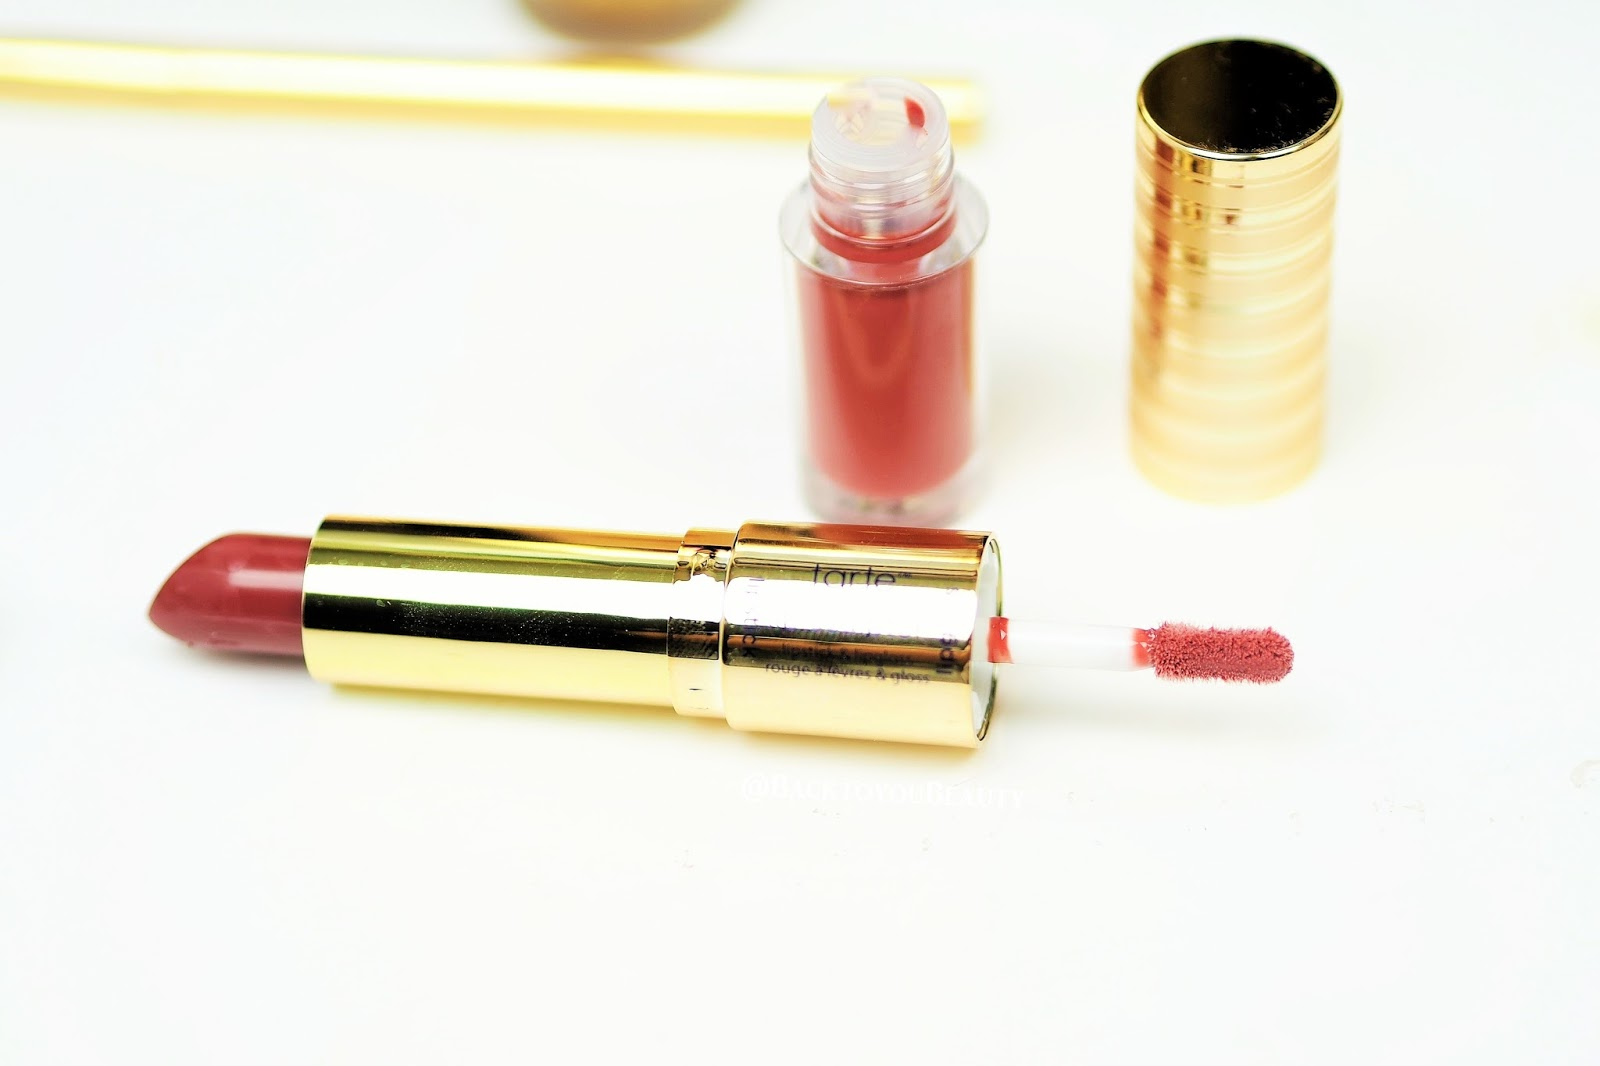 Tarte Double Ended Lipstick and Lipgloss in shade Sangria